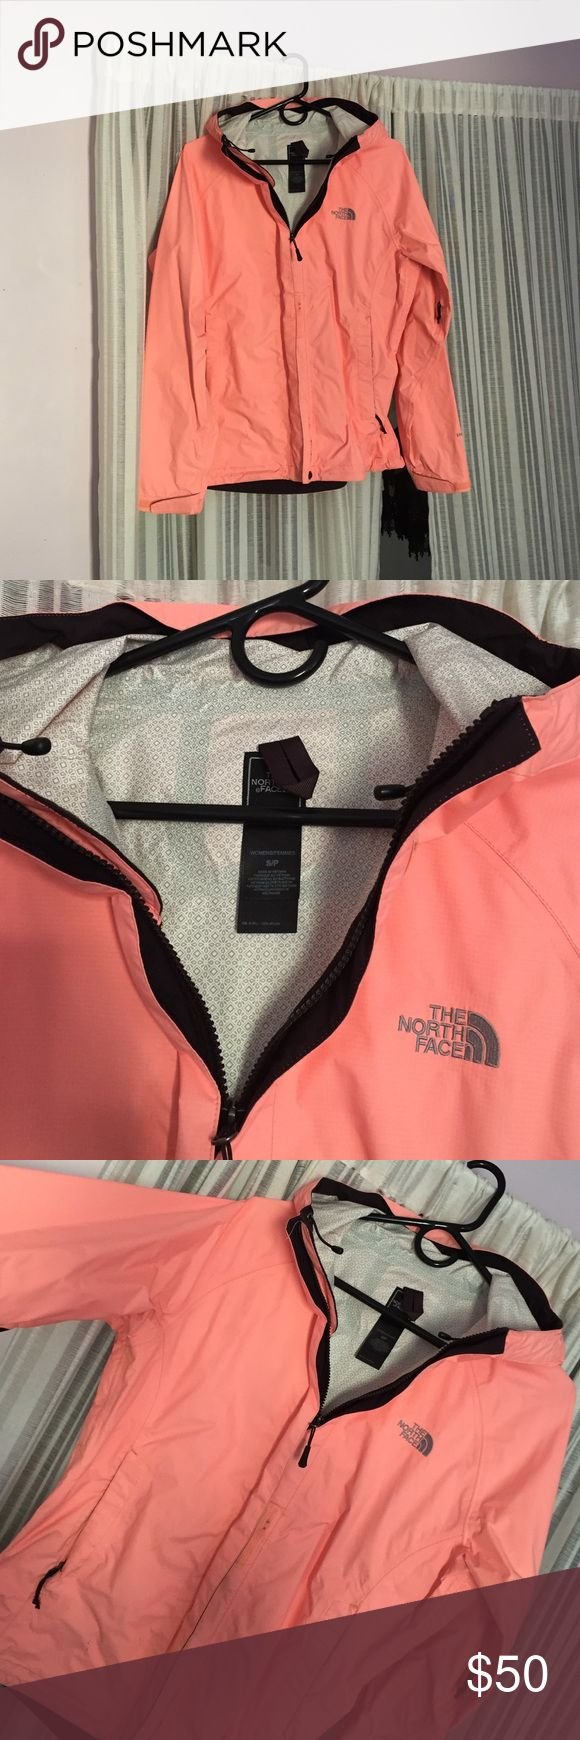 North face windbreaker sz S women neon peach Bright color, cute orangey/pinky windbreaker from north face. Has a dark purple plum trim and white pattern inside . Keeps you dry but not too hott. Willing to trade for similar style. North Face Jackets & Coats